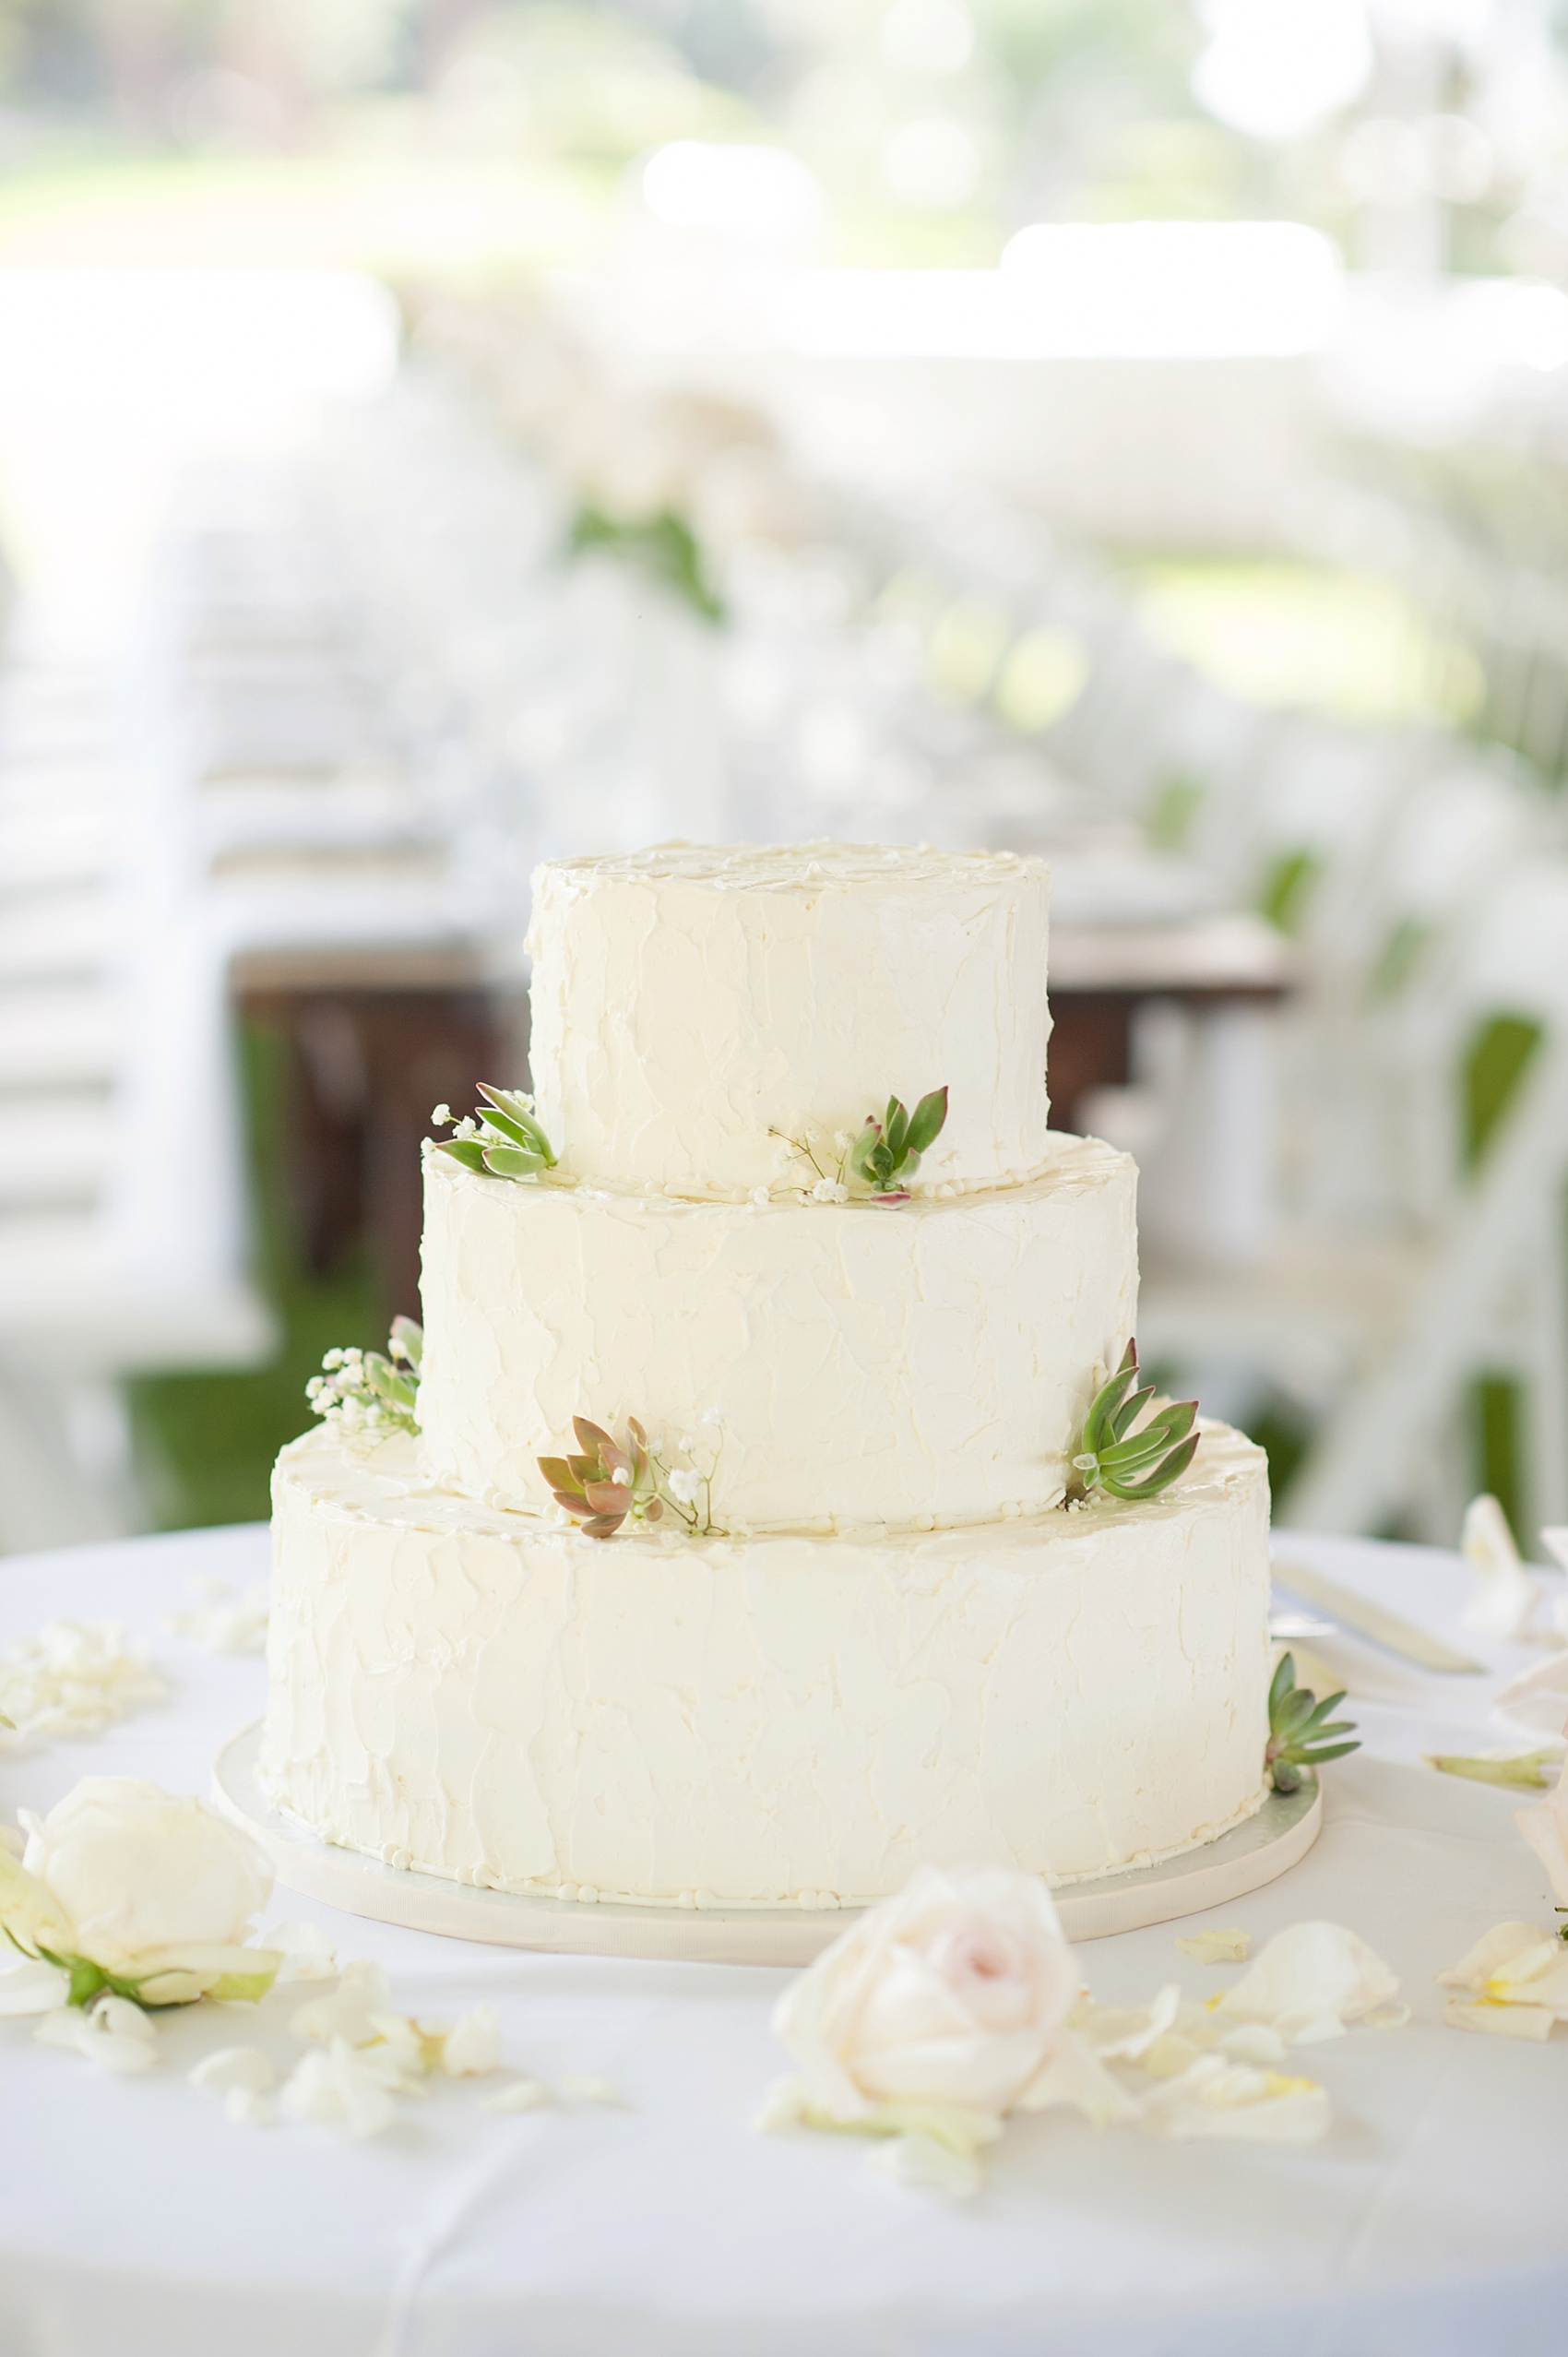 White tiered buttercream wedding cake with succulents attached for a wedding reception at Haig Point in South Carolina, off the coast of Hilton Head. Photos by Mikkel Paige Photography.